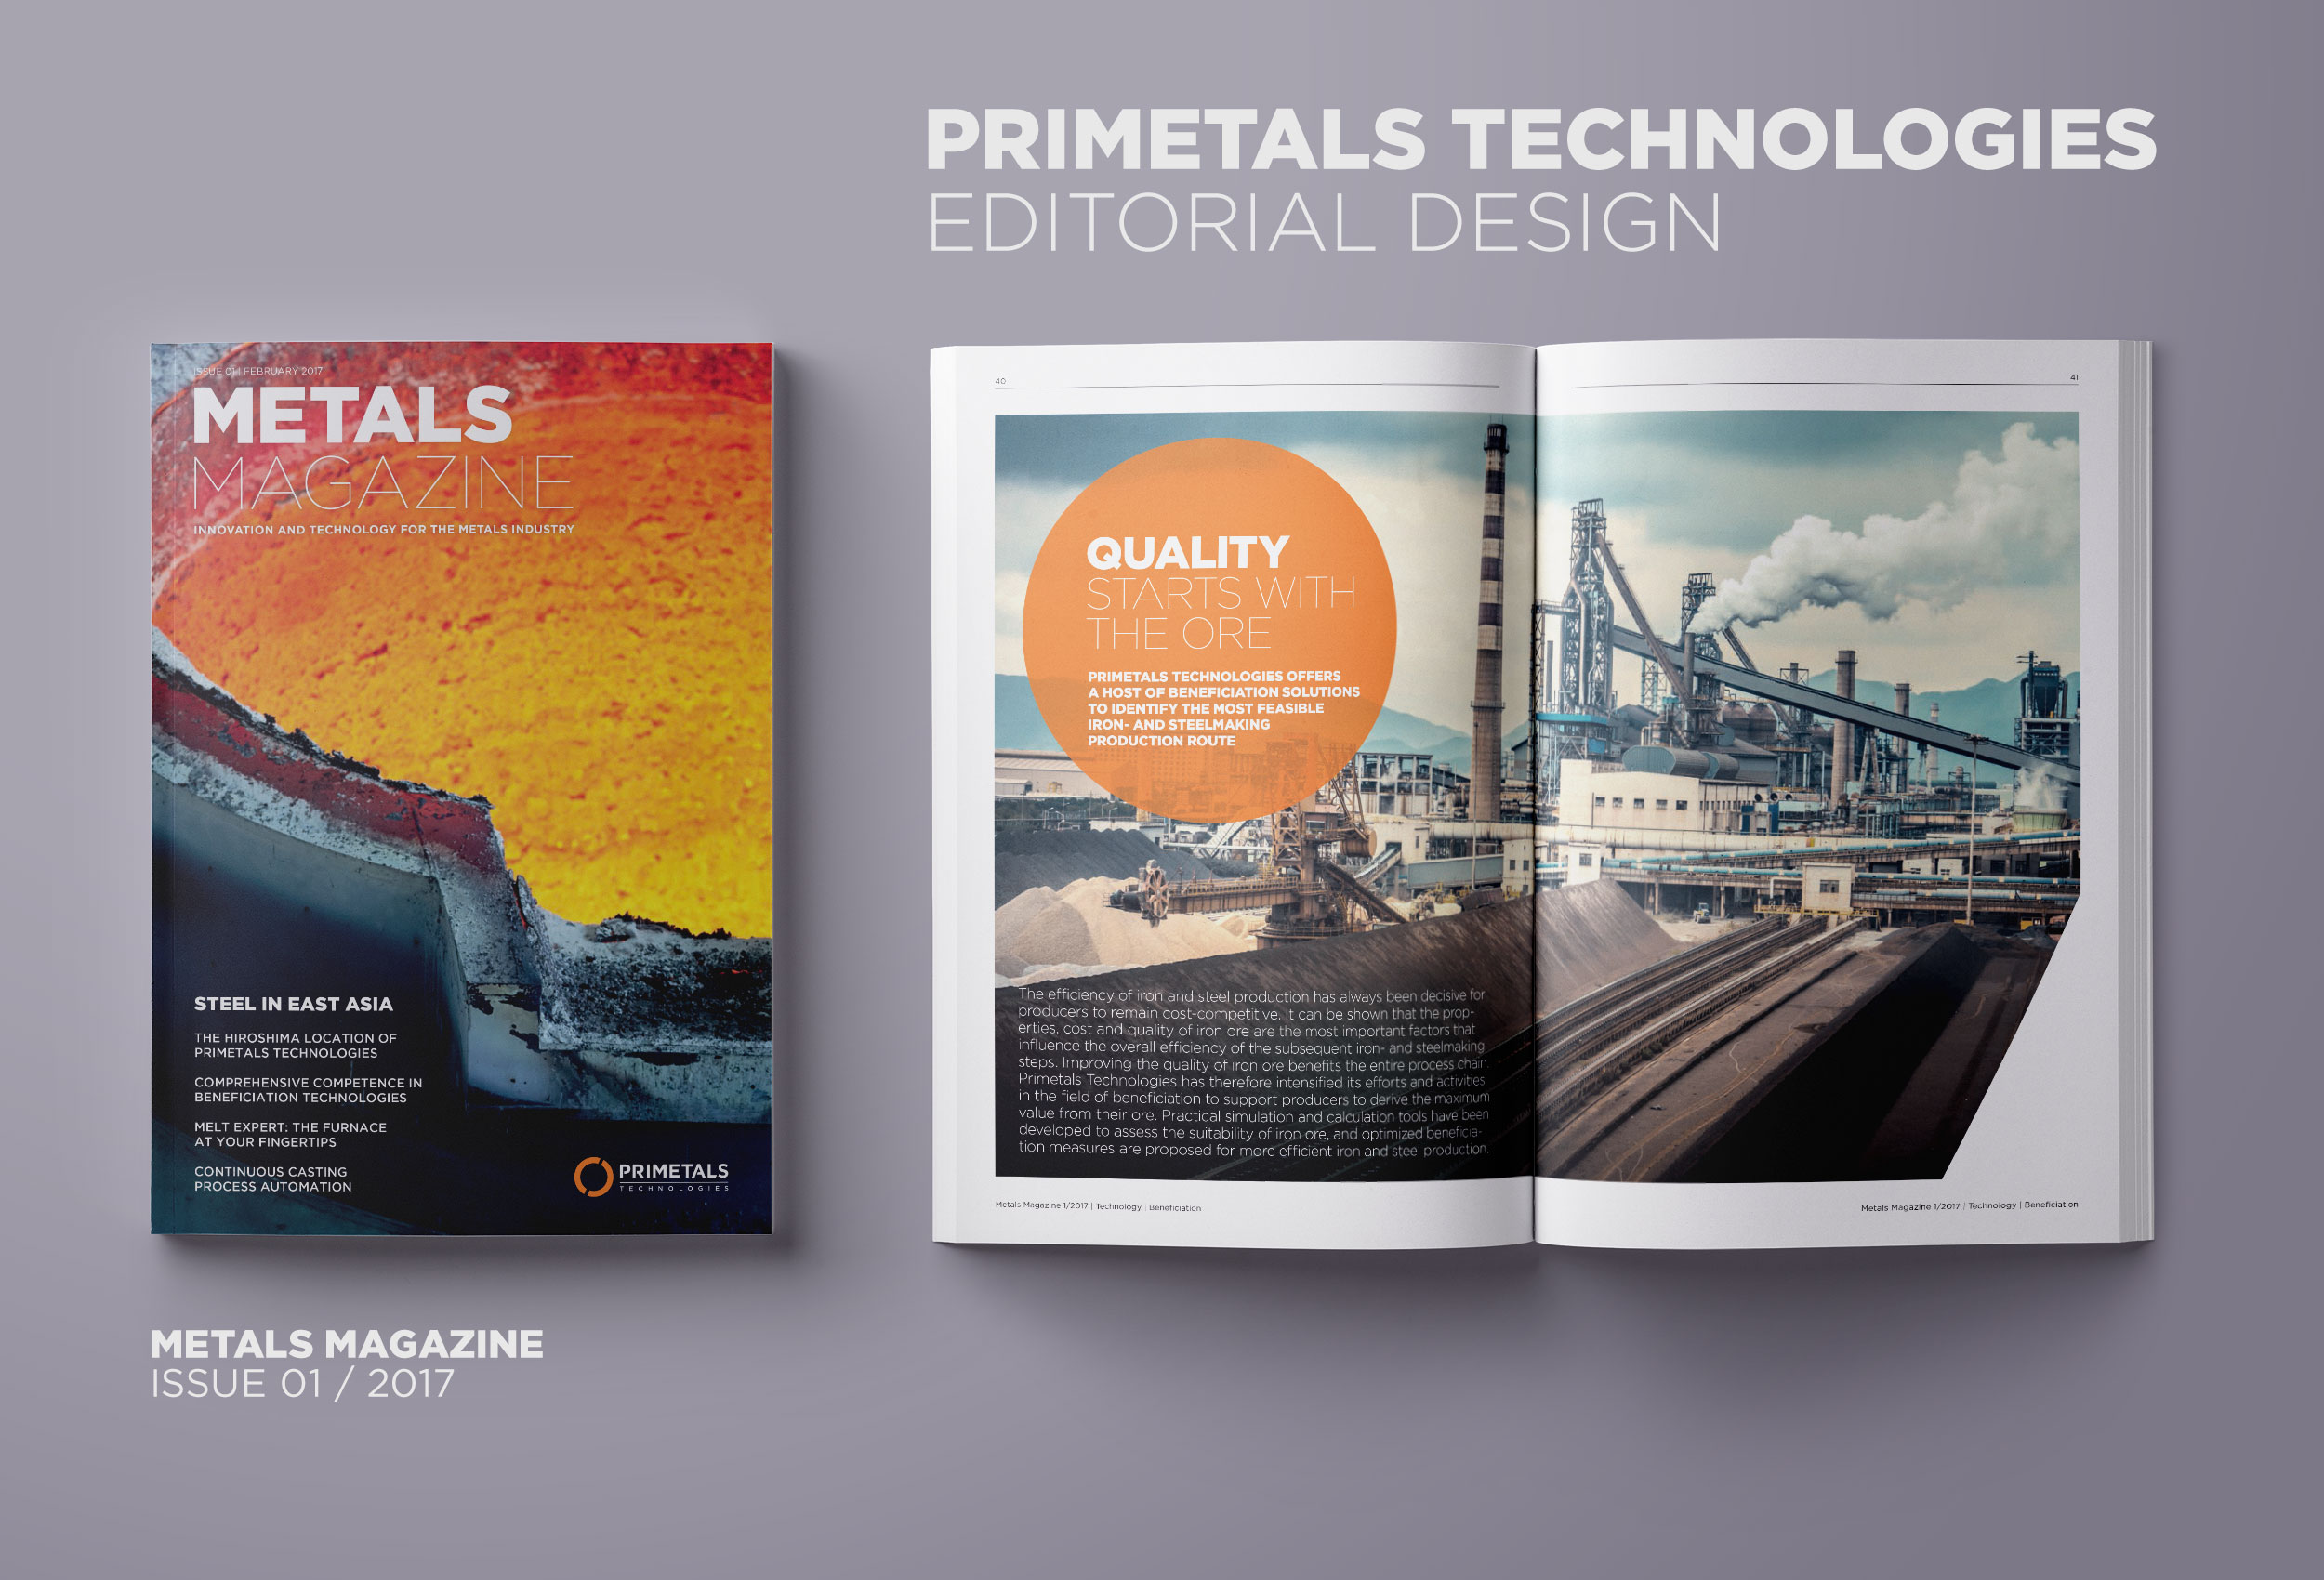 Primetals Metals Magazine layout of cover and opened magazine